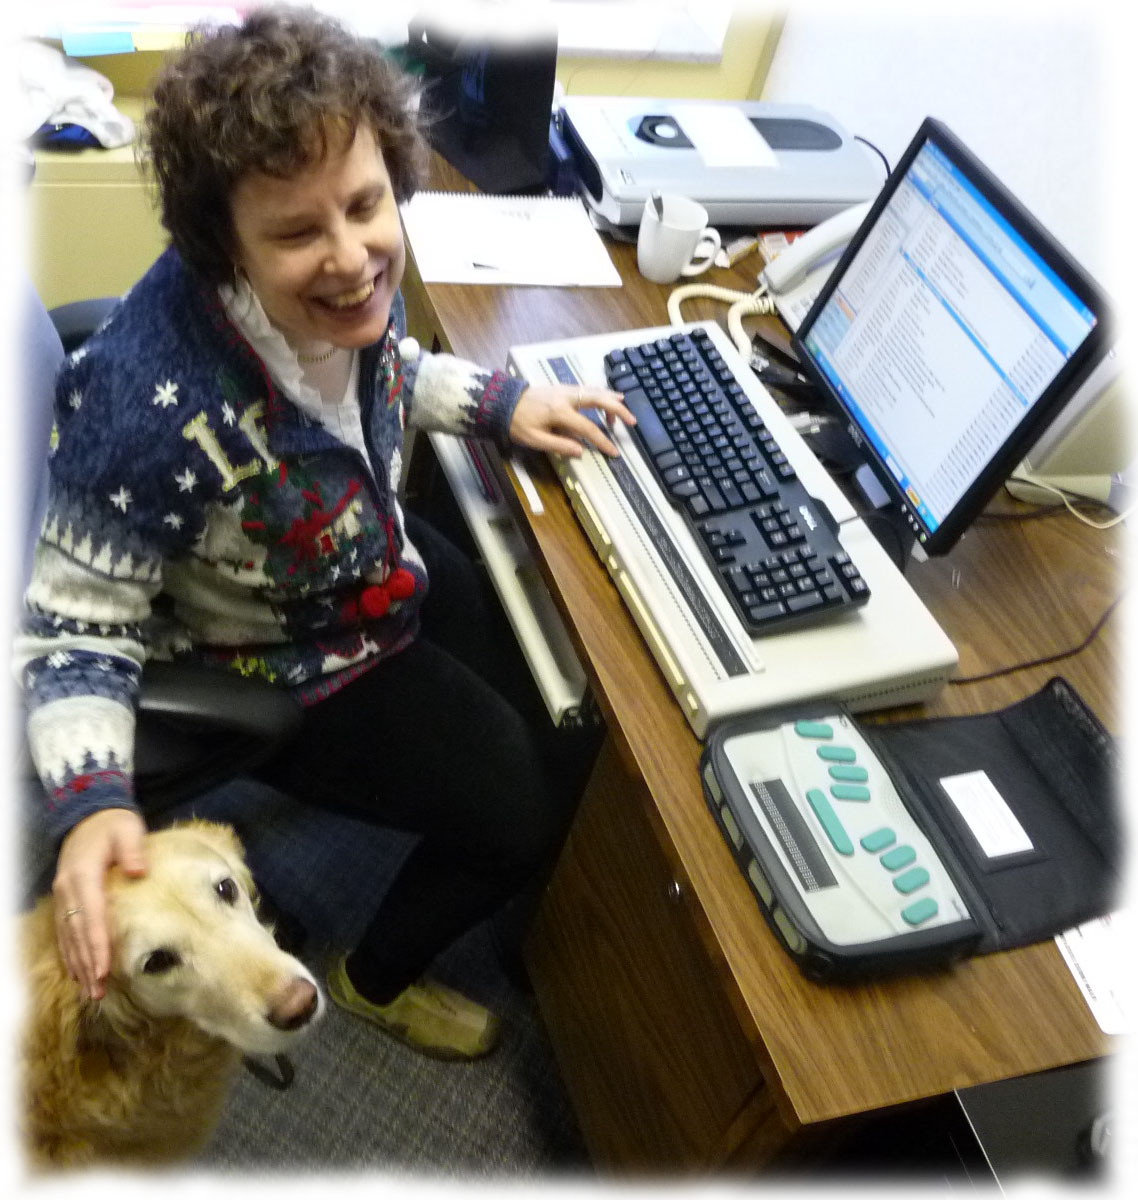 Kim working at her desk with her guide dog